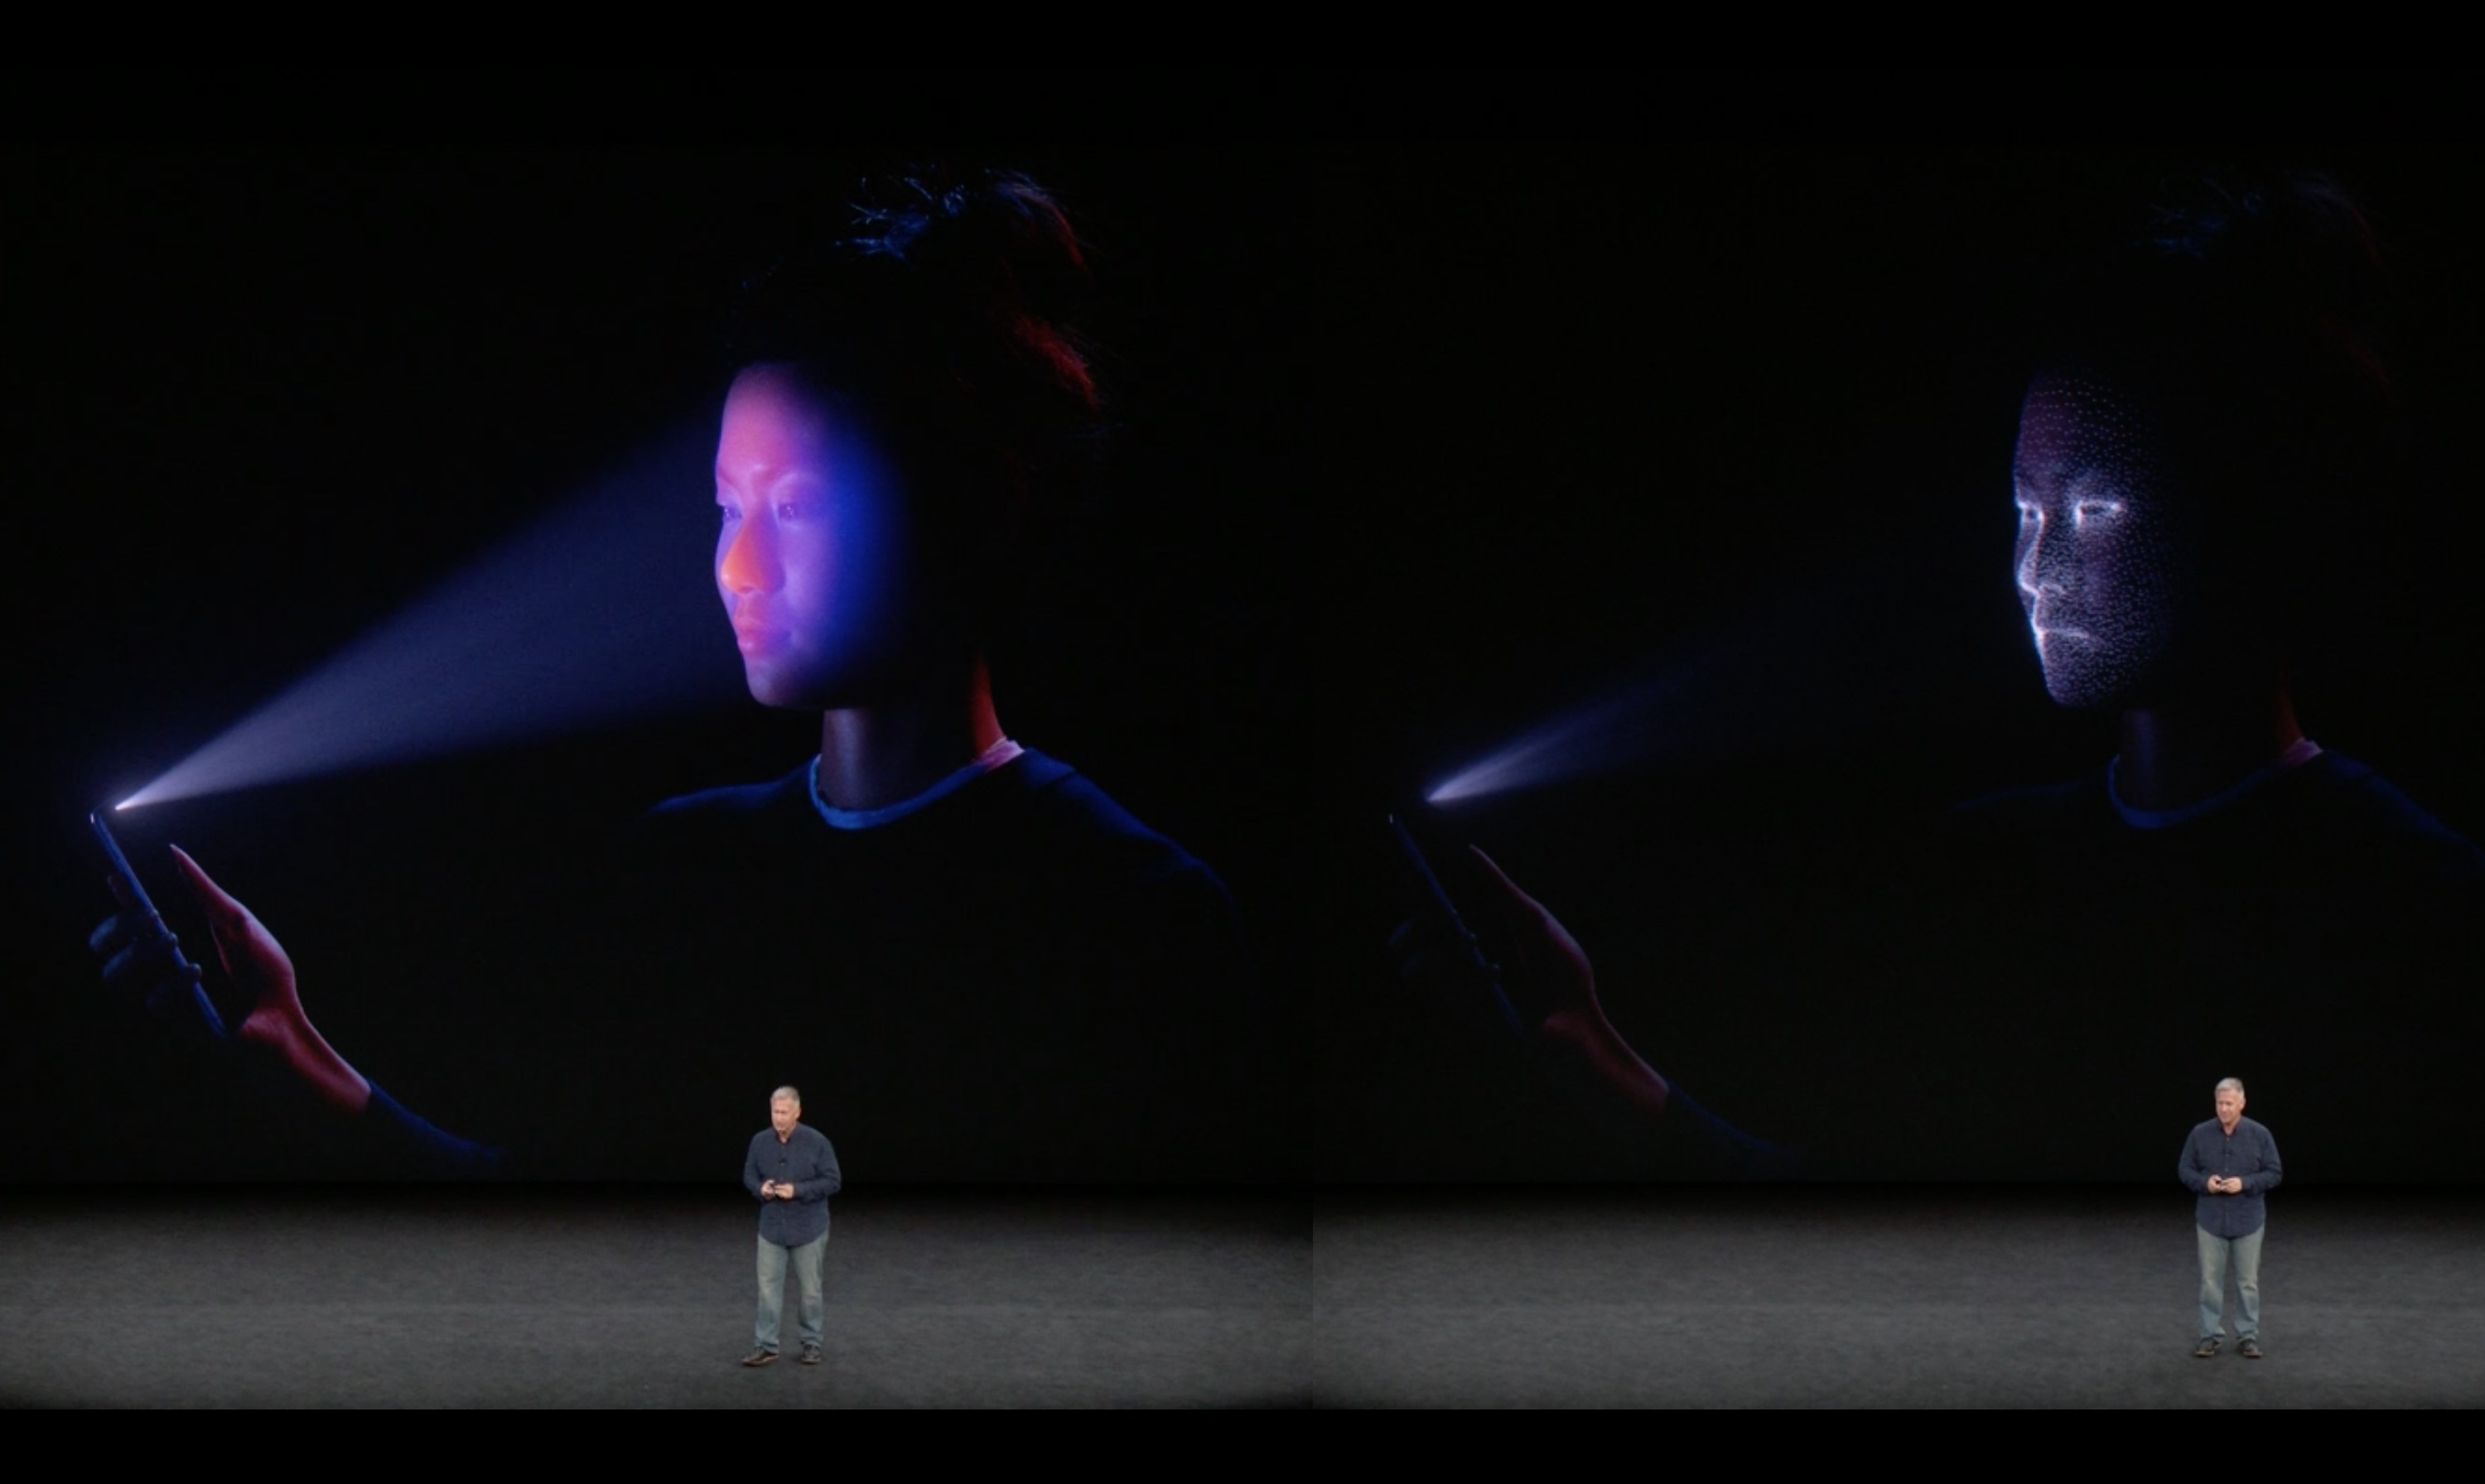 iPhone X basically has a Kinect on the front to enable Face ID